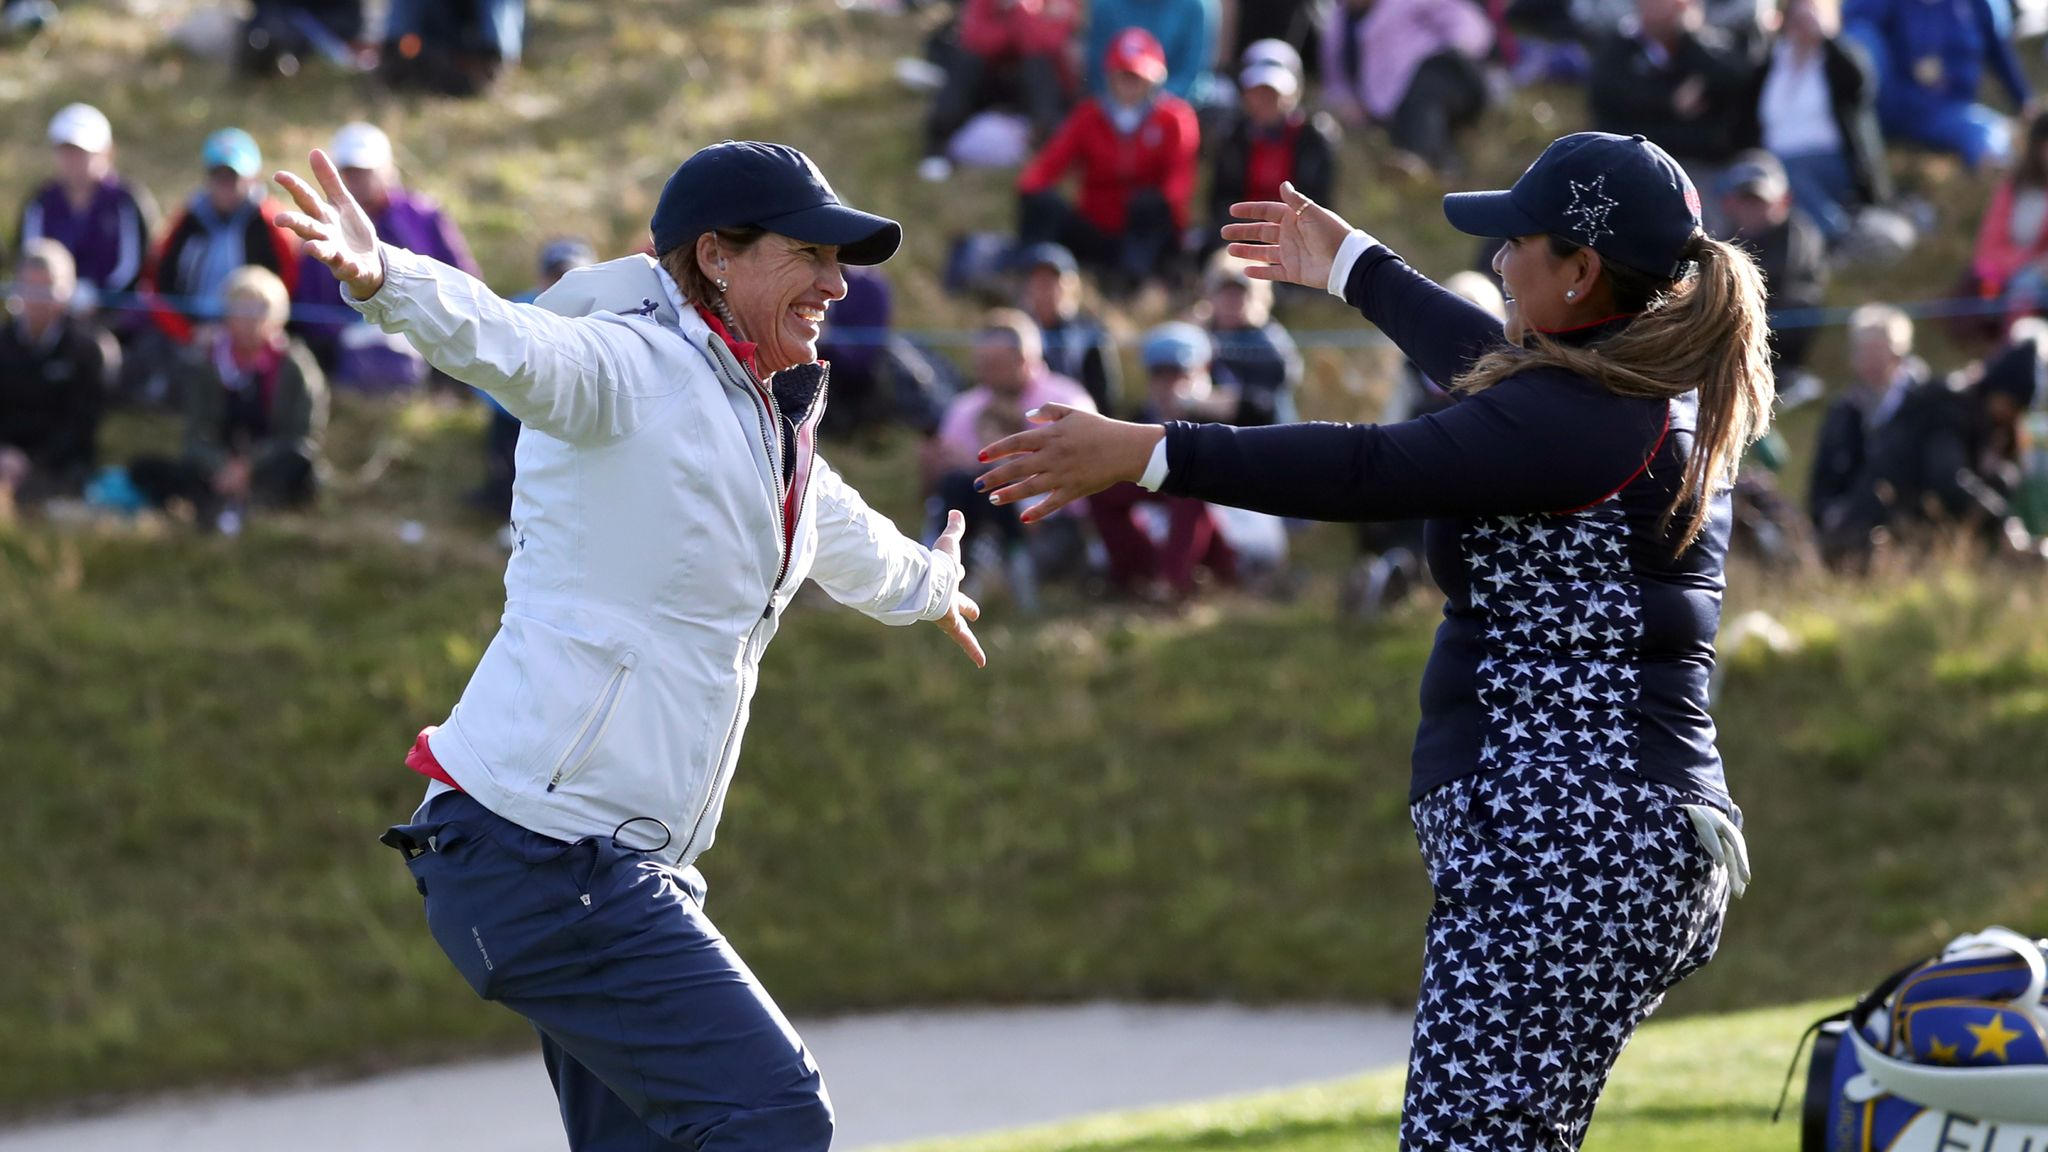 Solheim Cup great for women's golf, says USA captain Juli Inkster